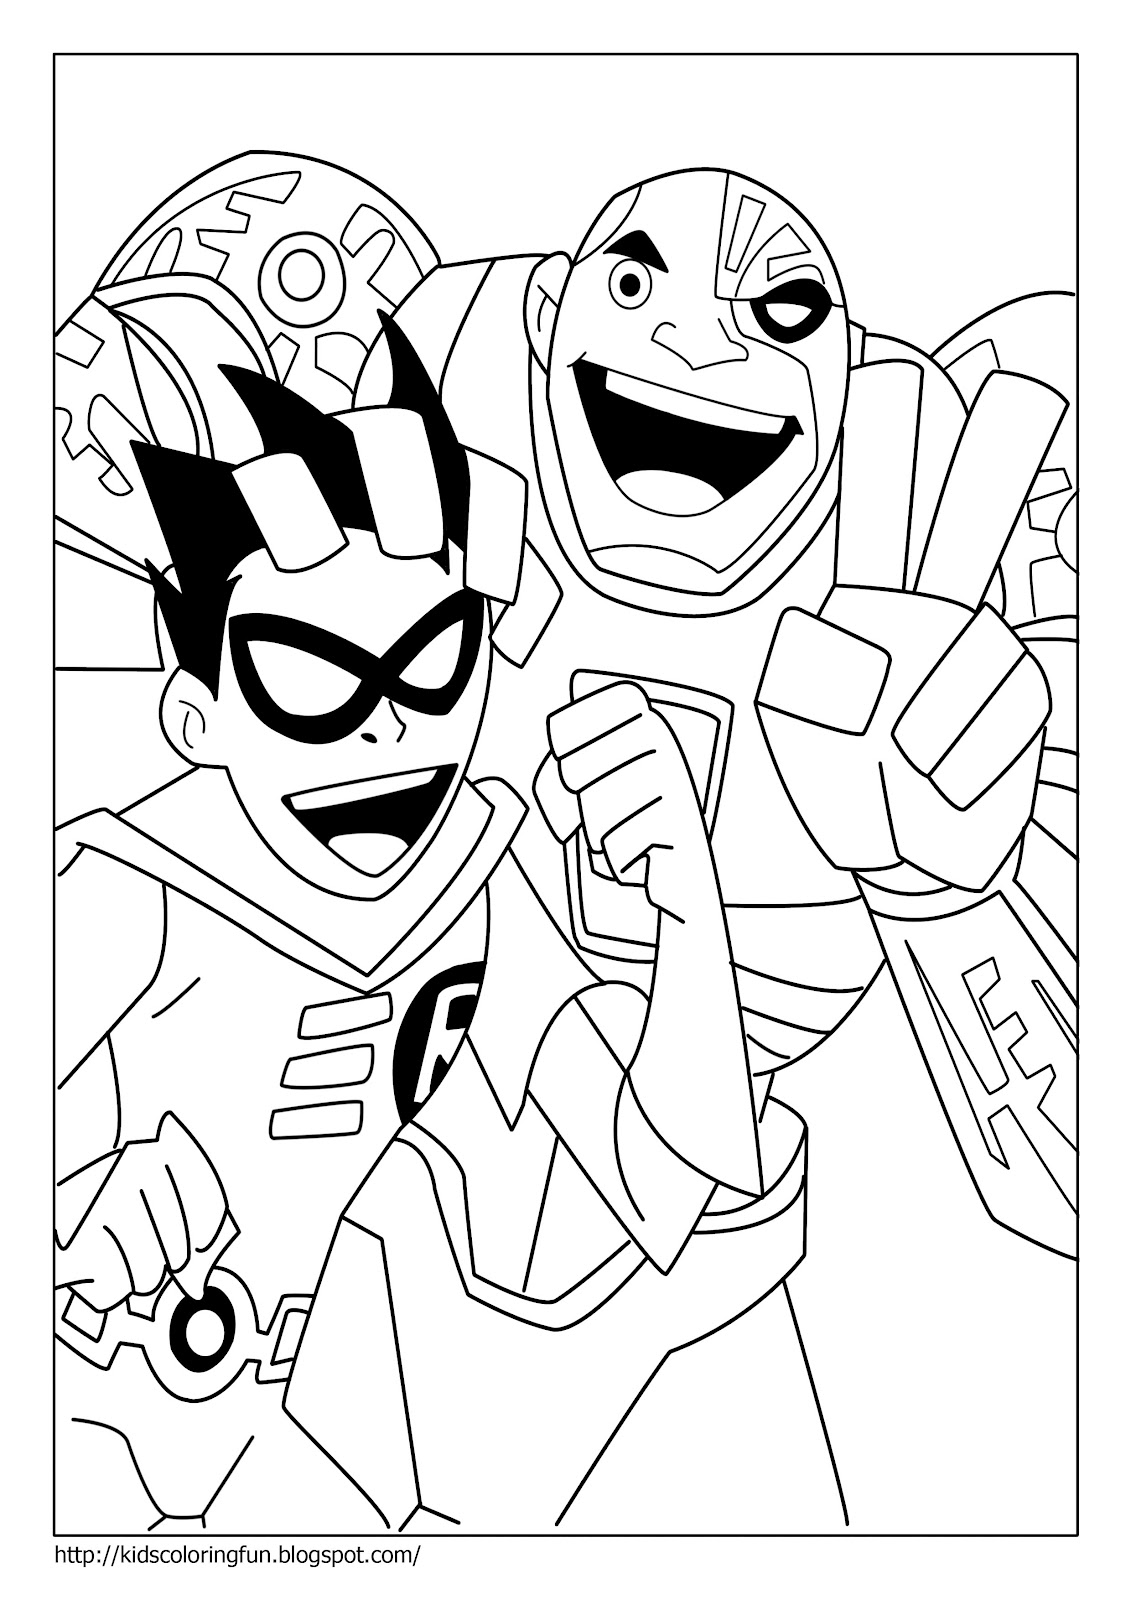 teen titans coloring pages cartoon coloring pages best coloring pages for kids pages teen titans coloring